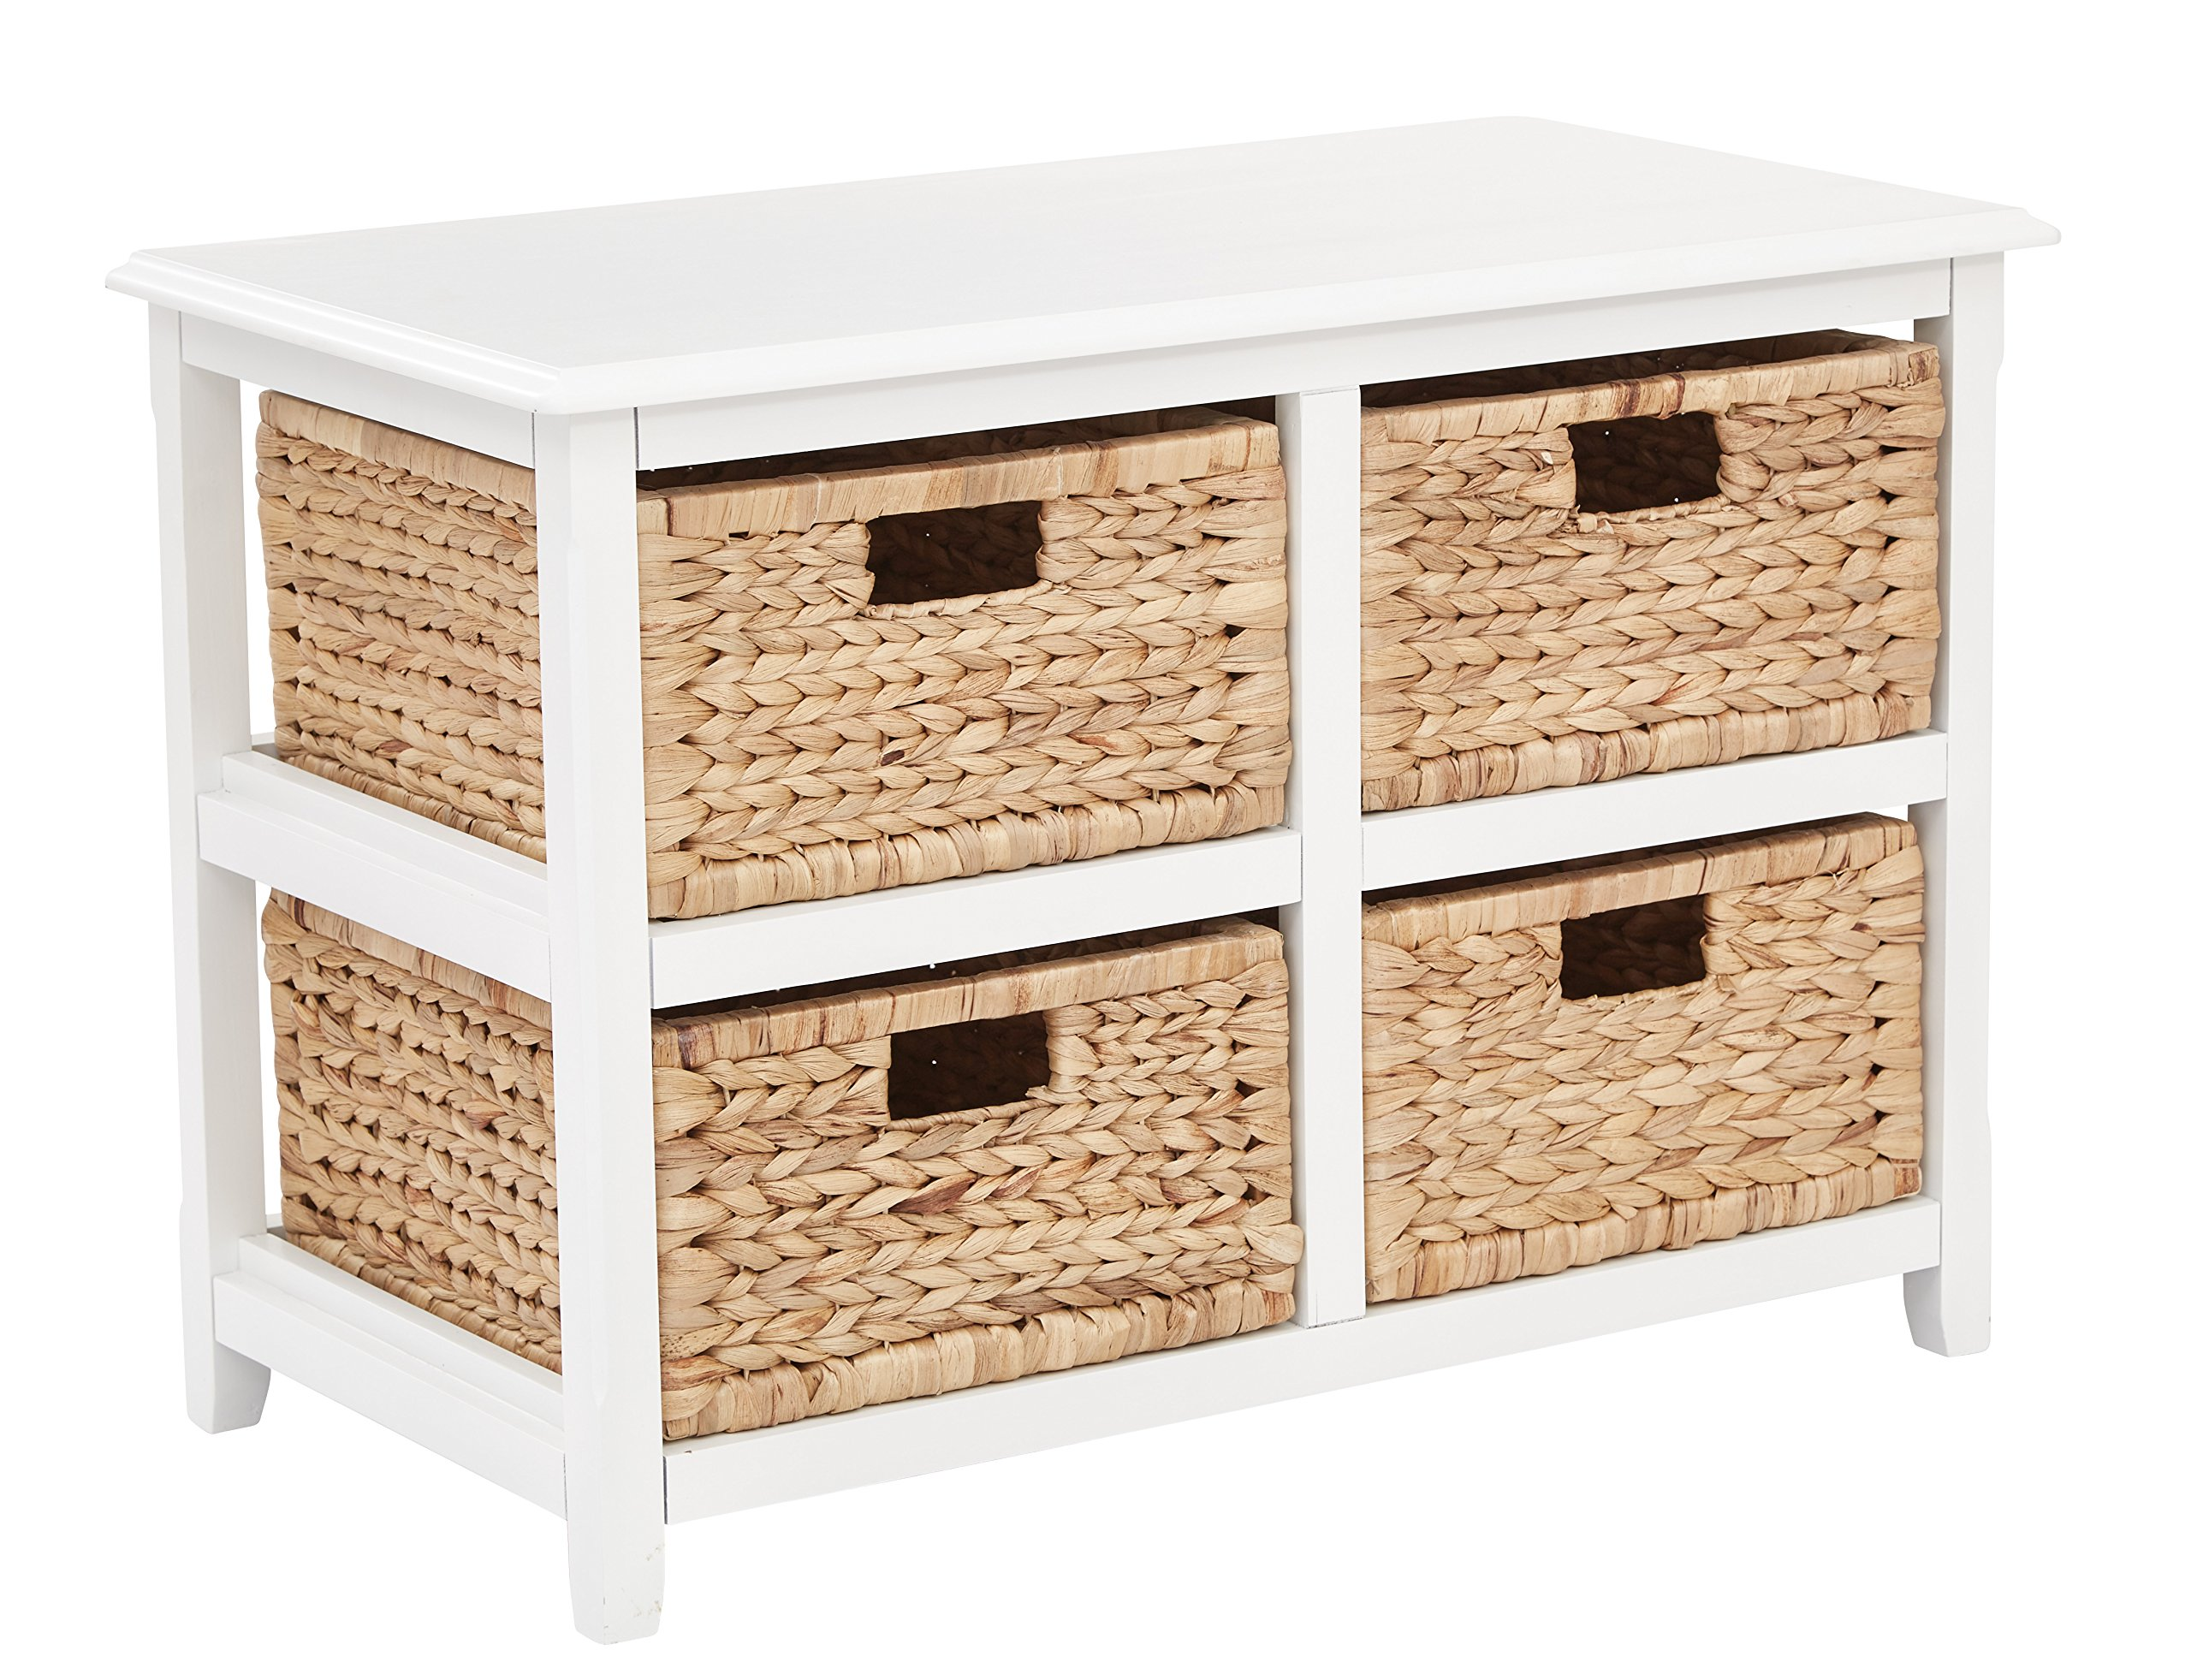 Office Star Seabrook 2-Tier, 4-Drawer Storage Unit with Natural Baskets, White Finish